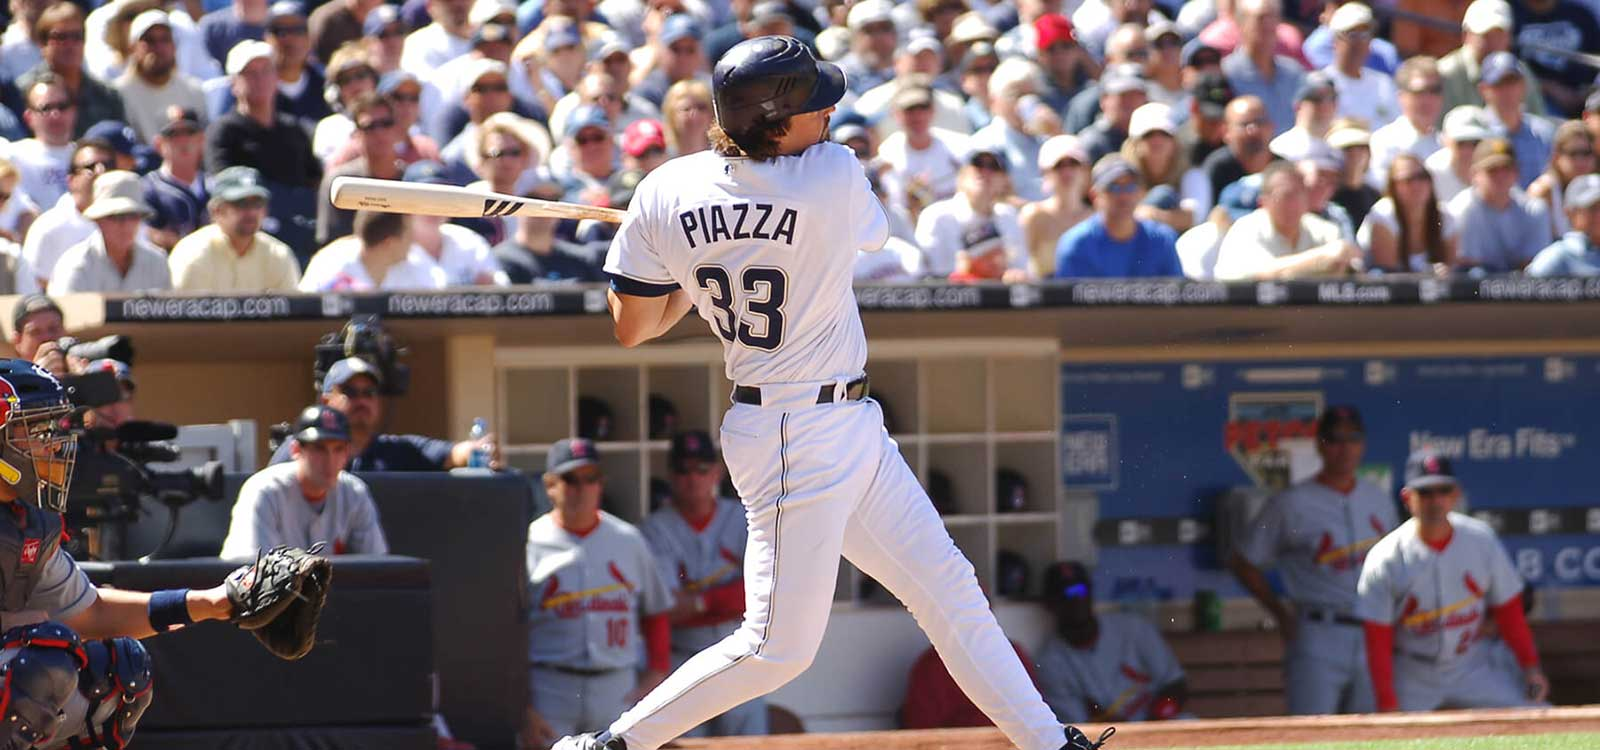 Action image of Mike Piazza